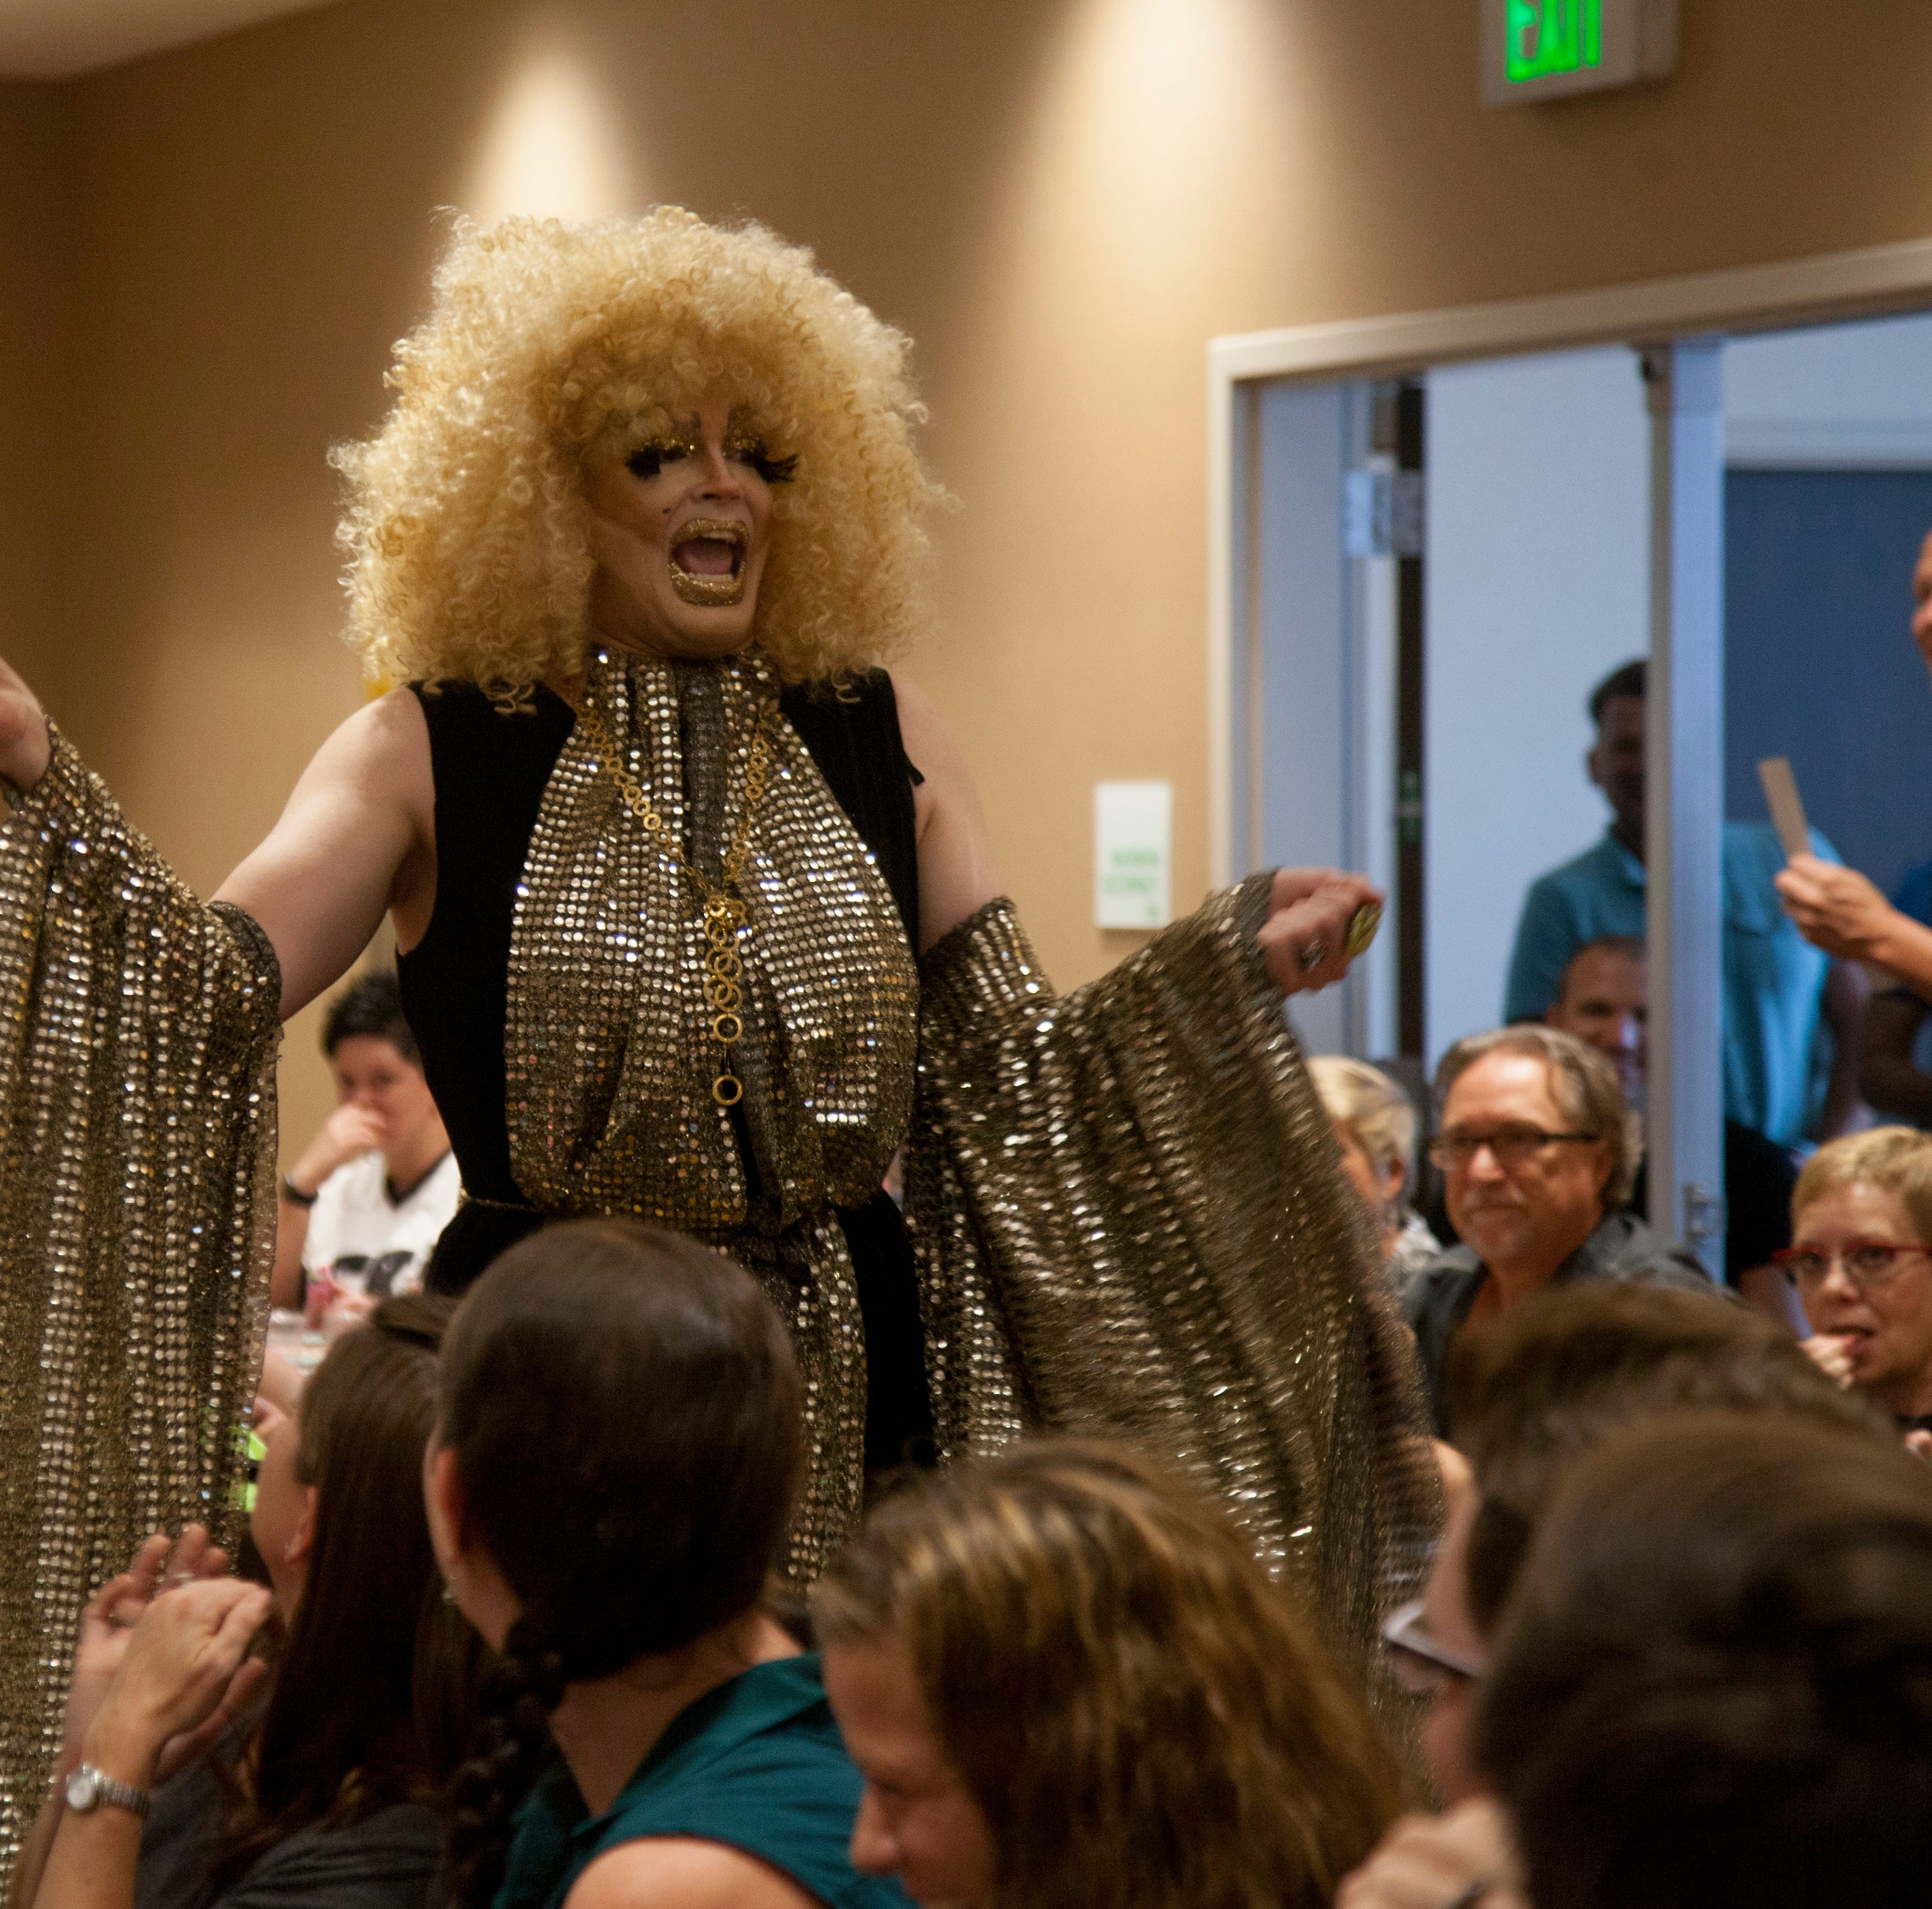 Drag Queen Bingo raises funds for Pride festival, hosts full house